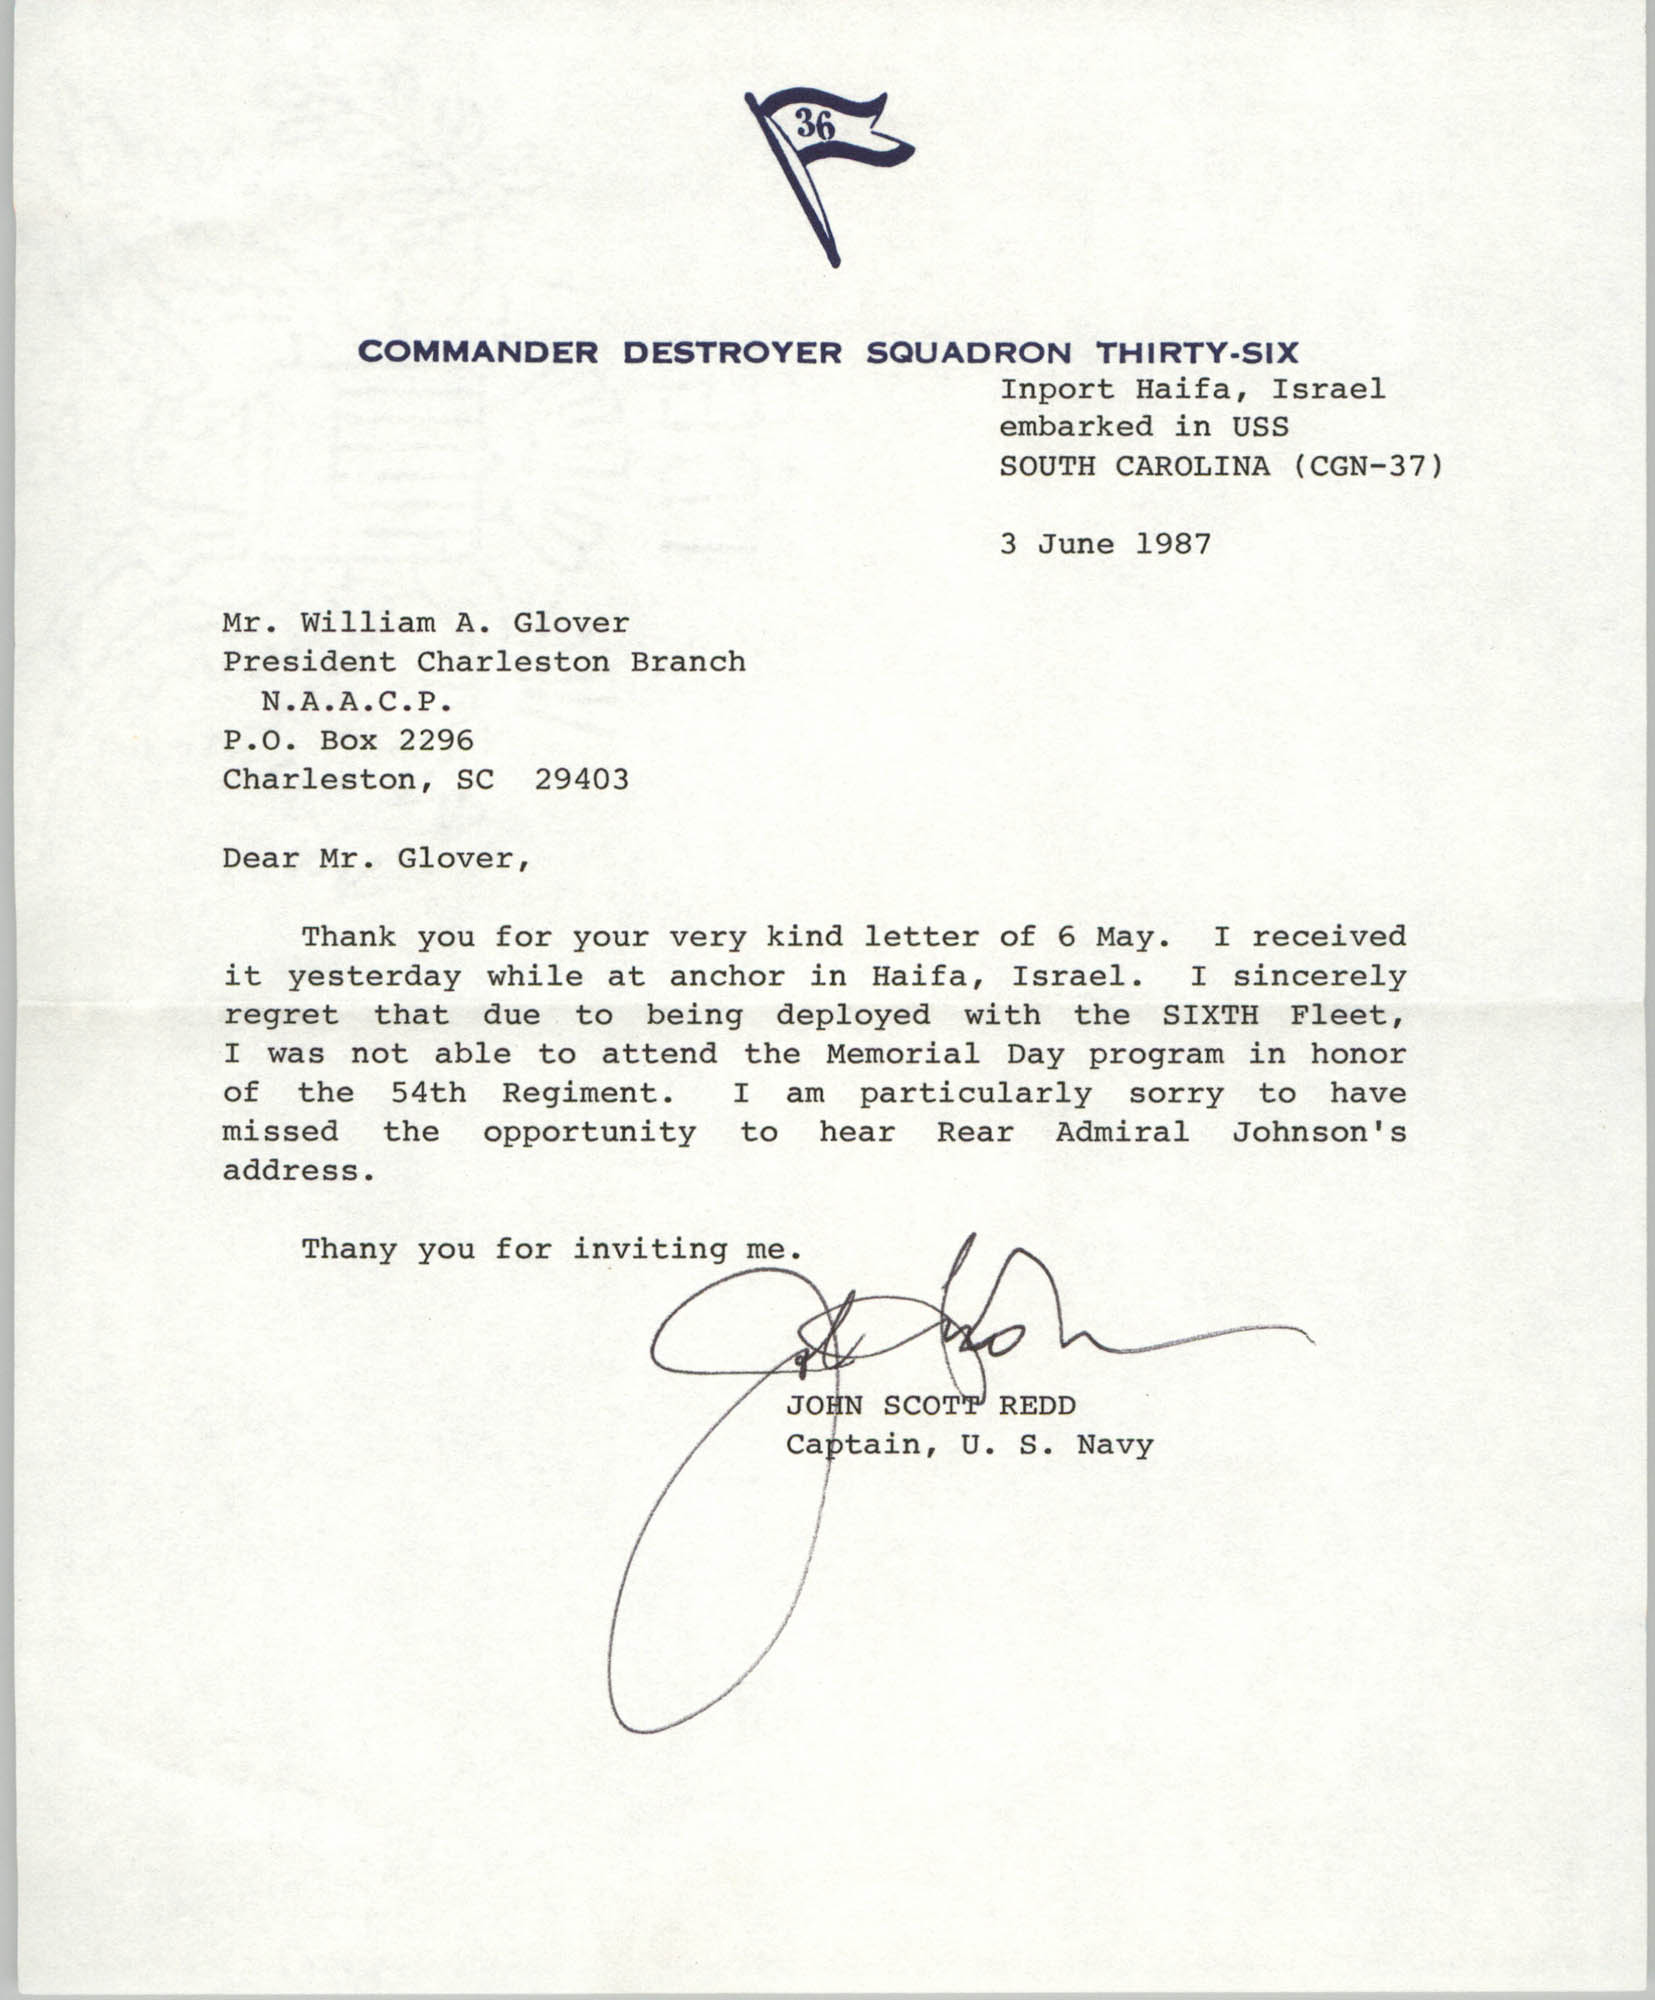 Letter from John Scott Redd to William A. Glover, June 3, 1987